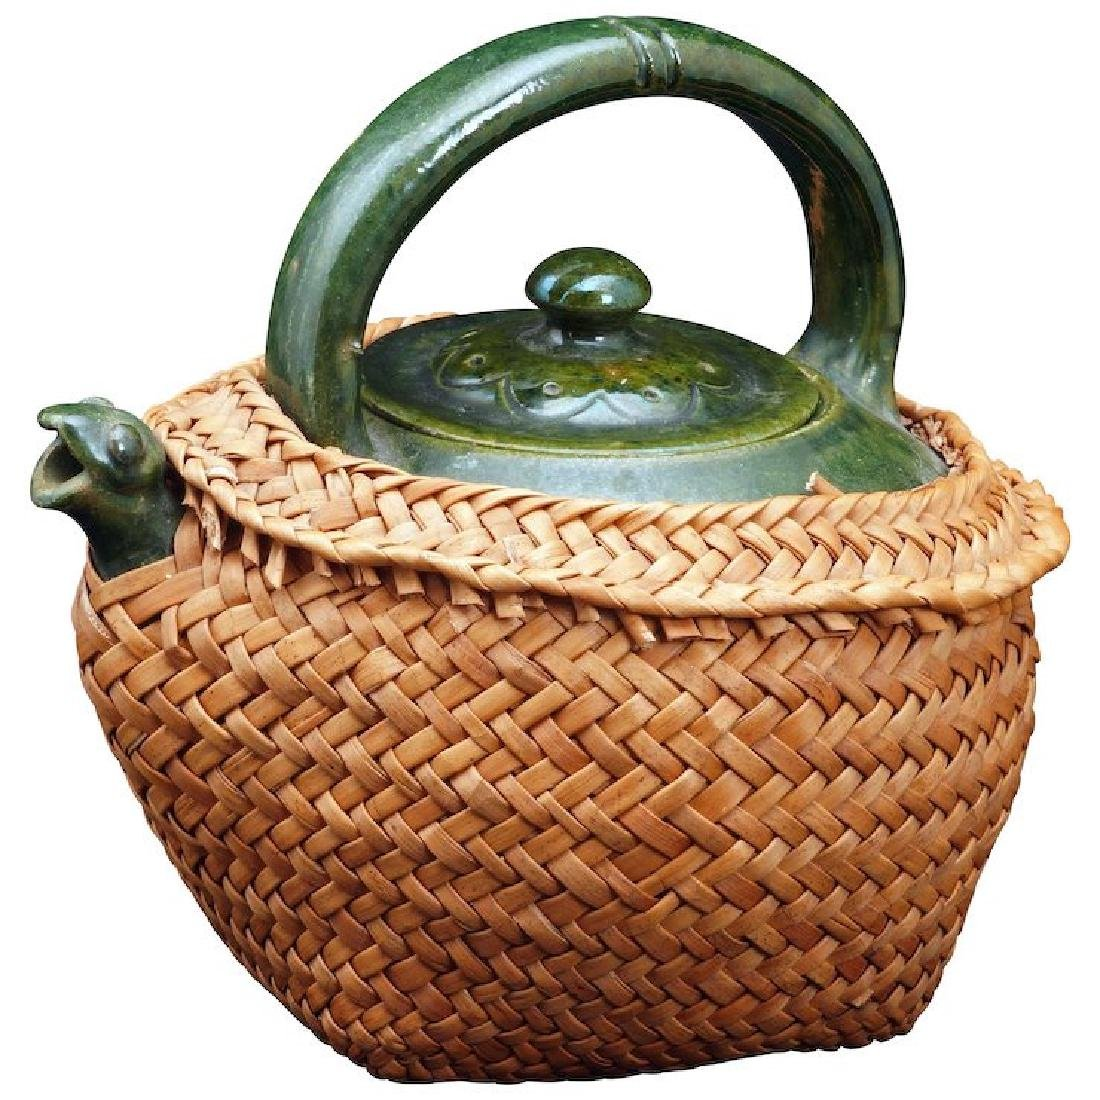 Chinese green glazed teapot with lid, frog spout and